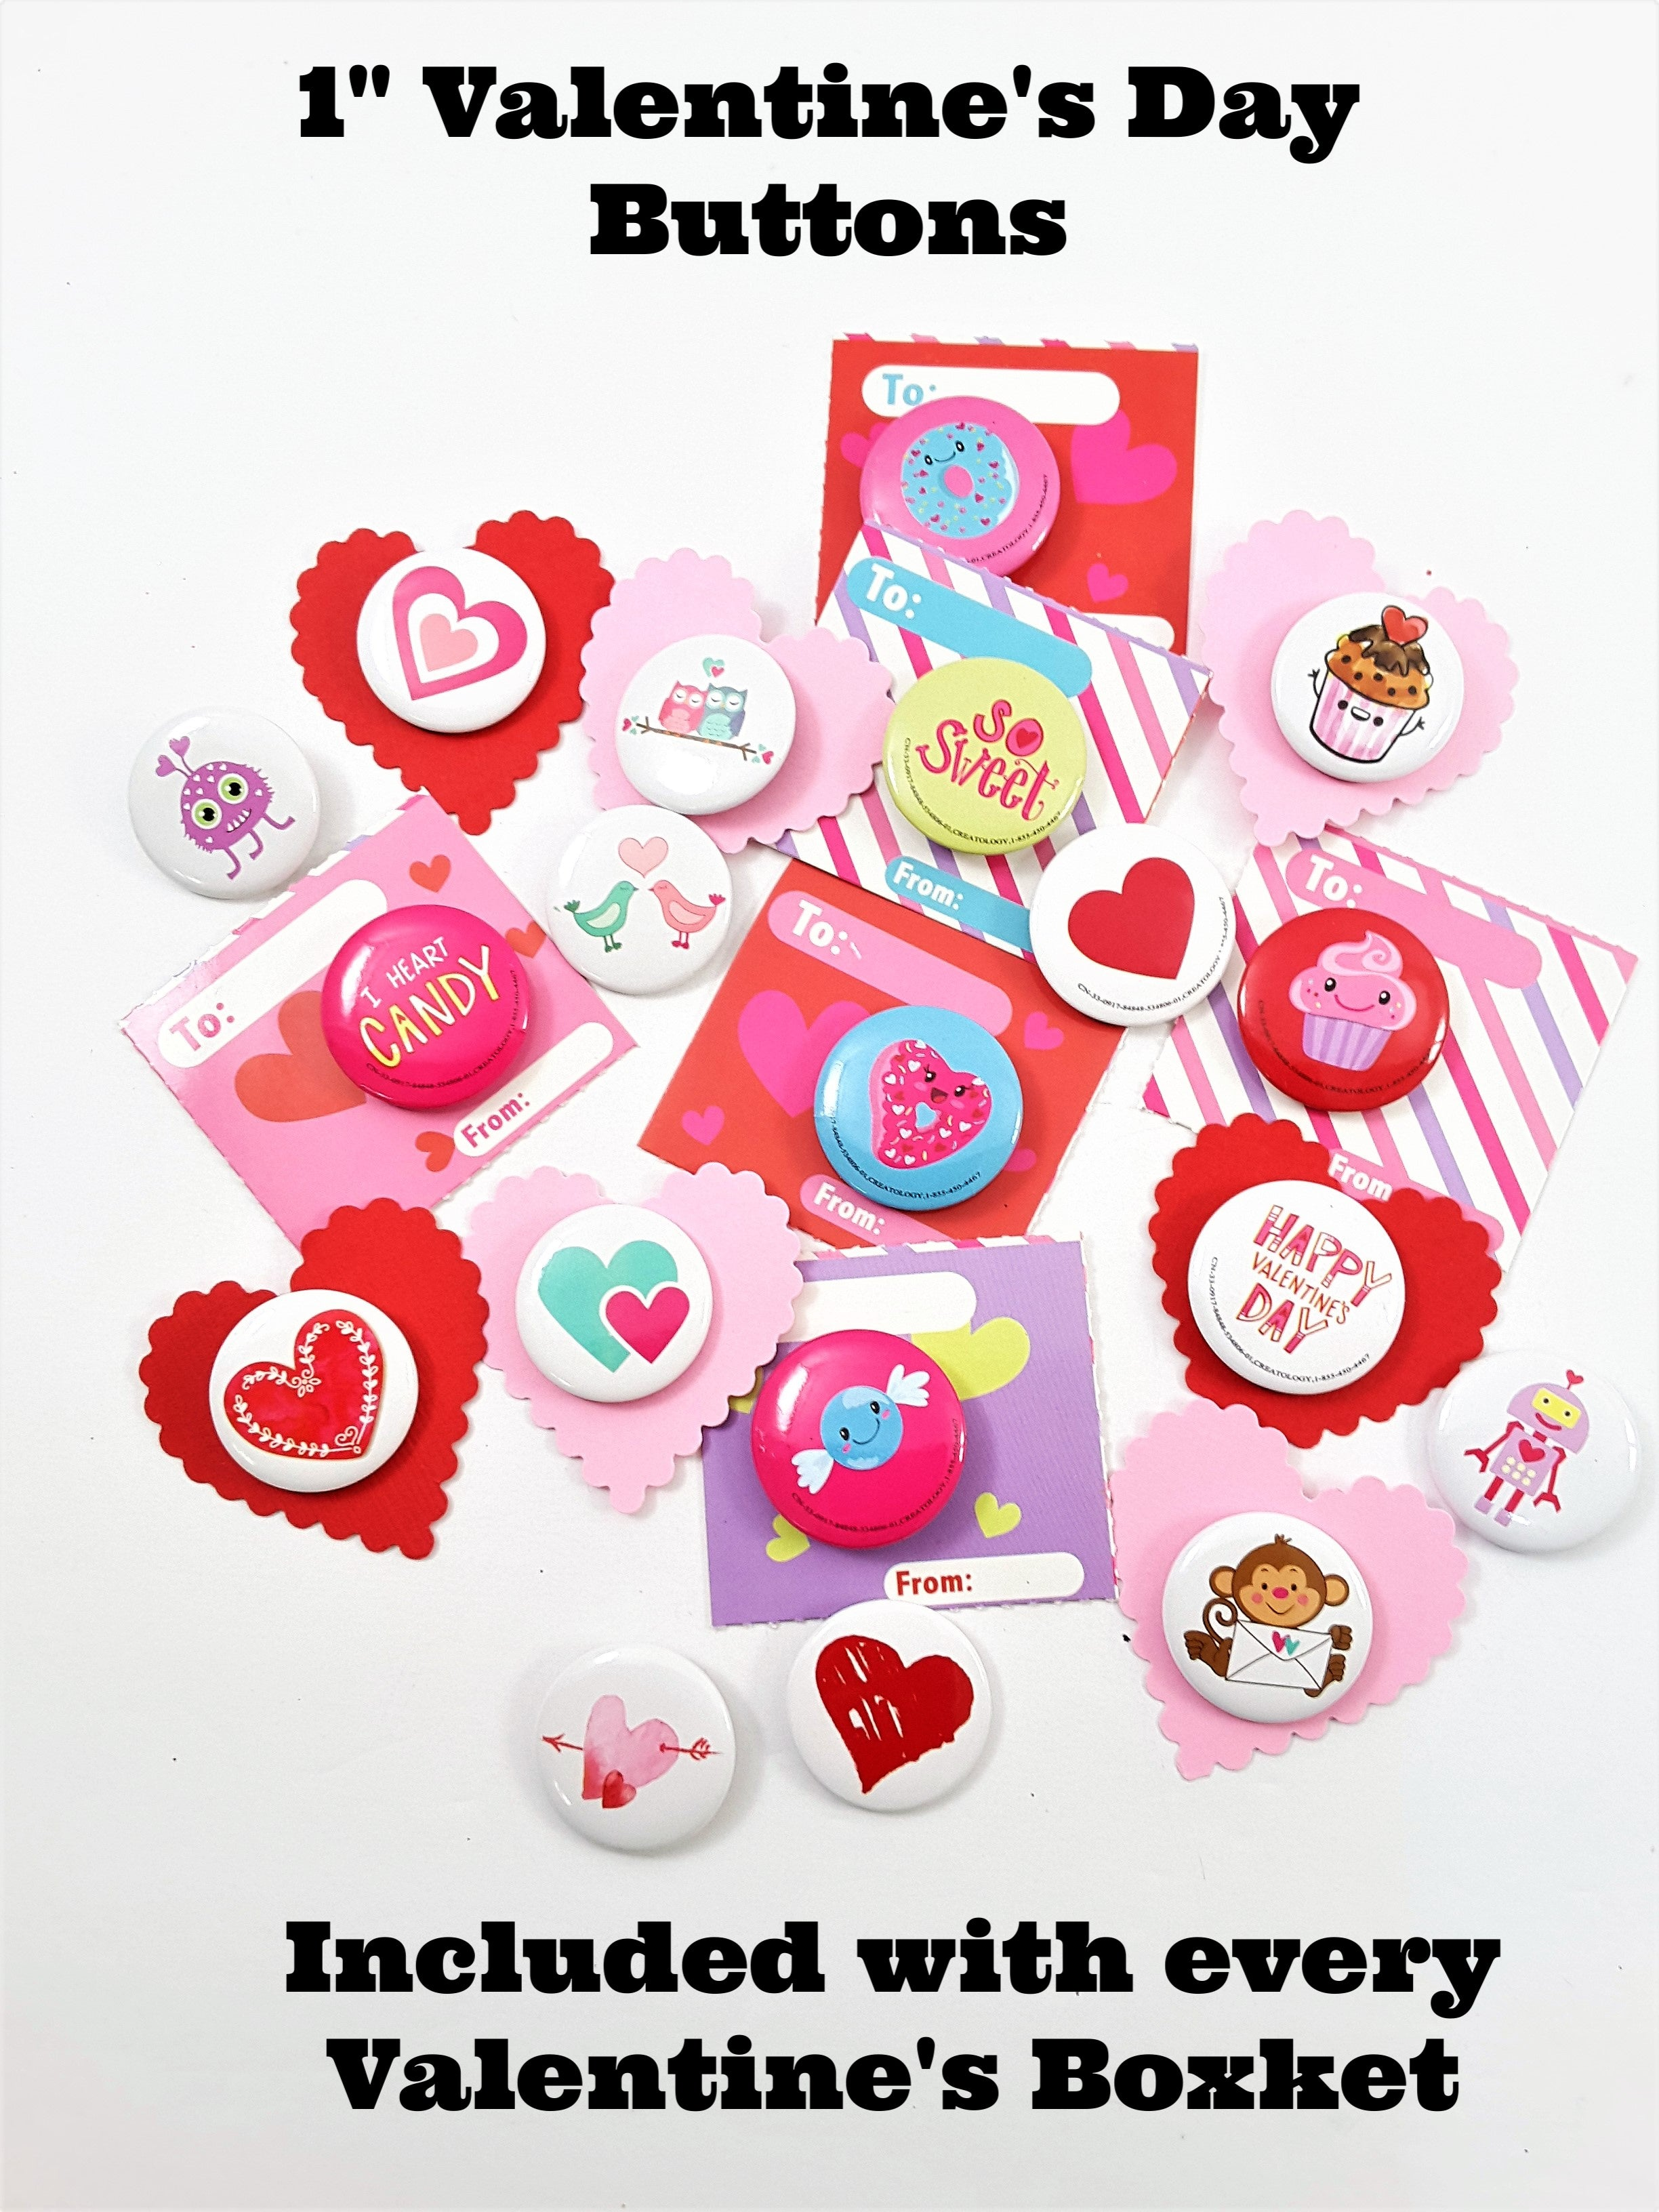 VALENTINE'S DAY 3D GREETING CARD - PINK ROSE BORDERED HEART